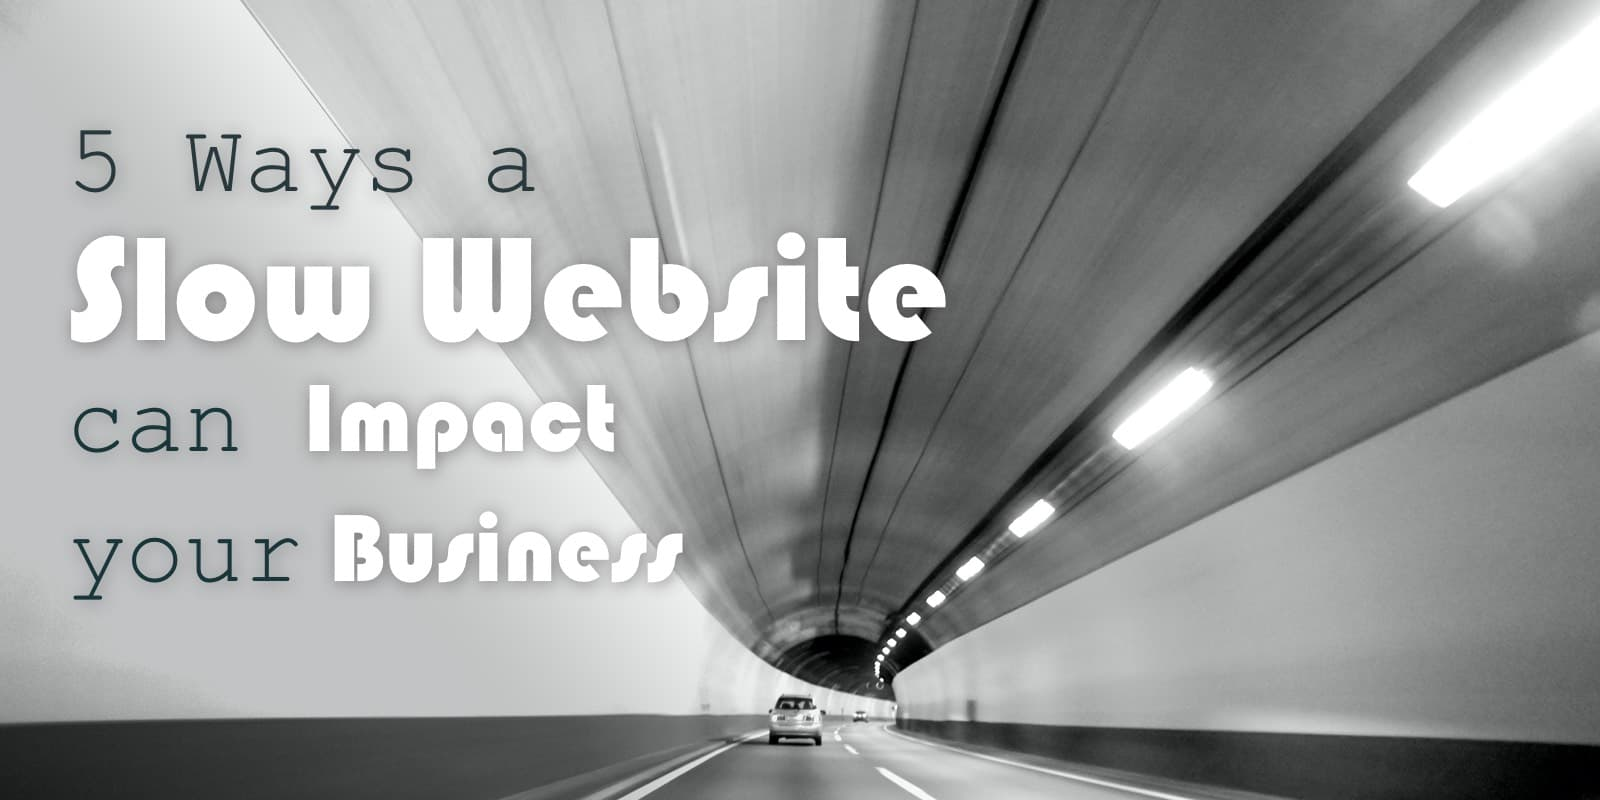 slow-web-site-impact-business.jpg